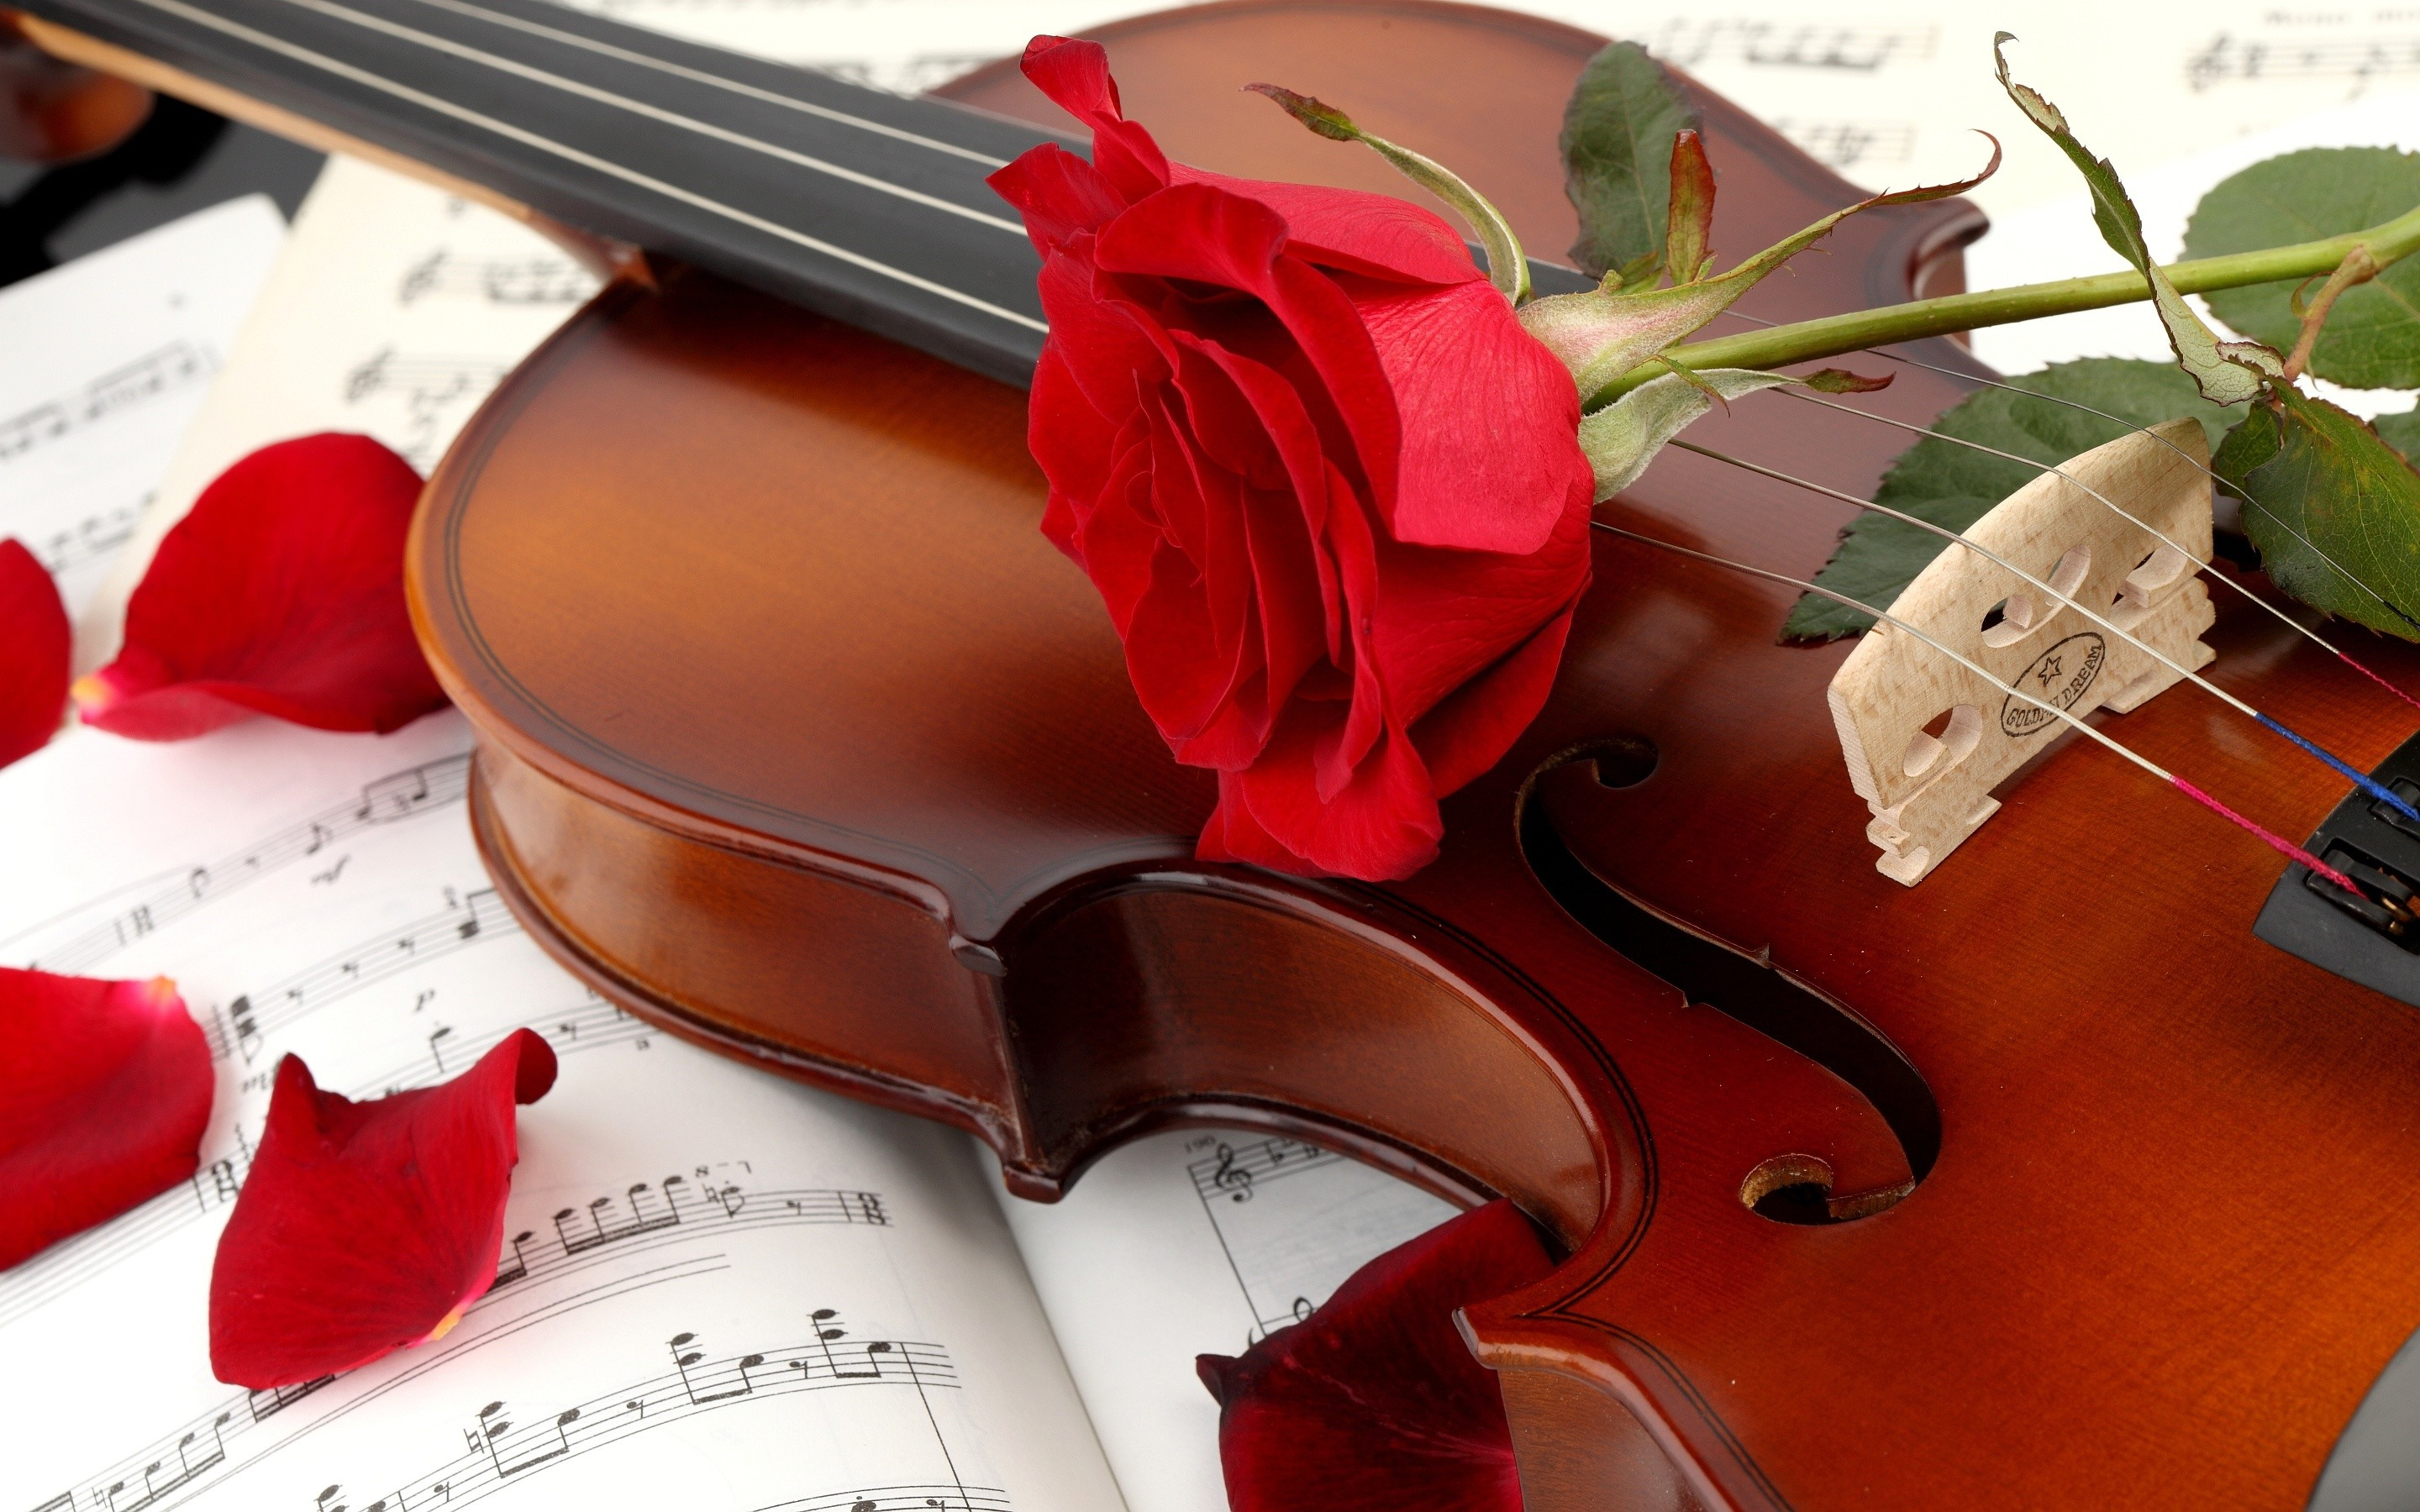 … red-rose-with-violin-hd-free-wallpapers …